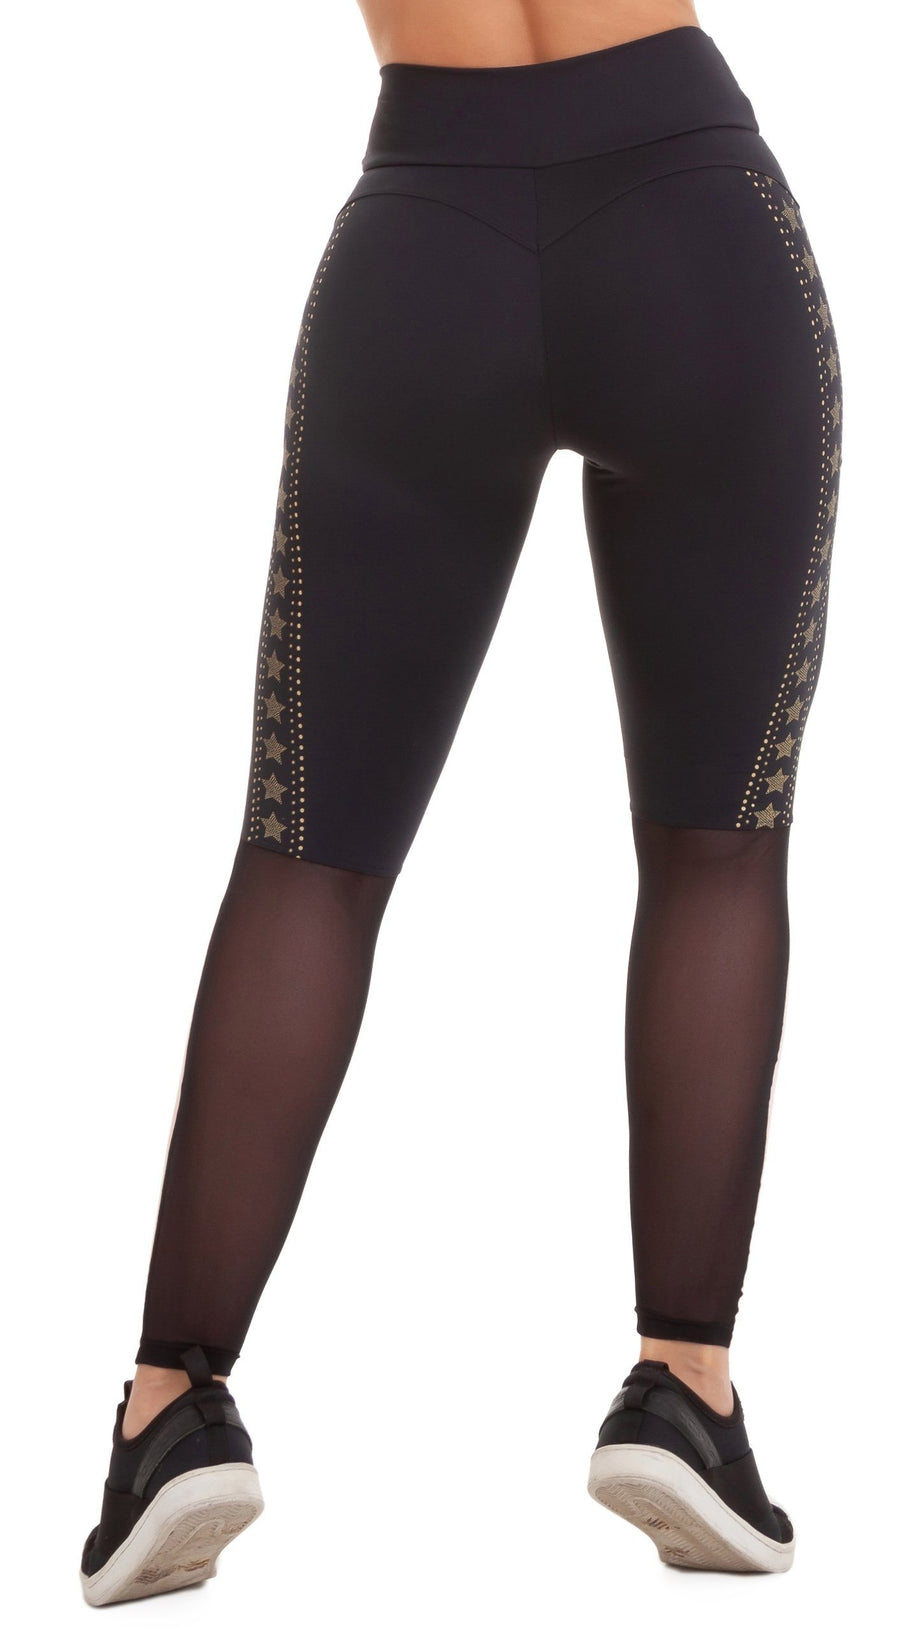 Brazilian Workout Legging - NZ Energetic Black